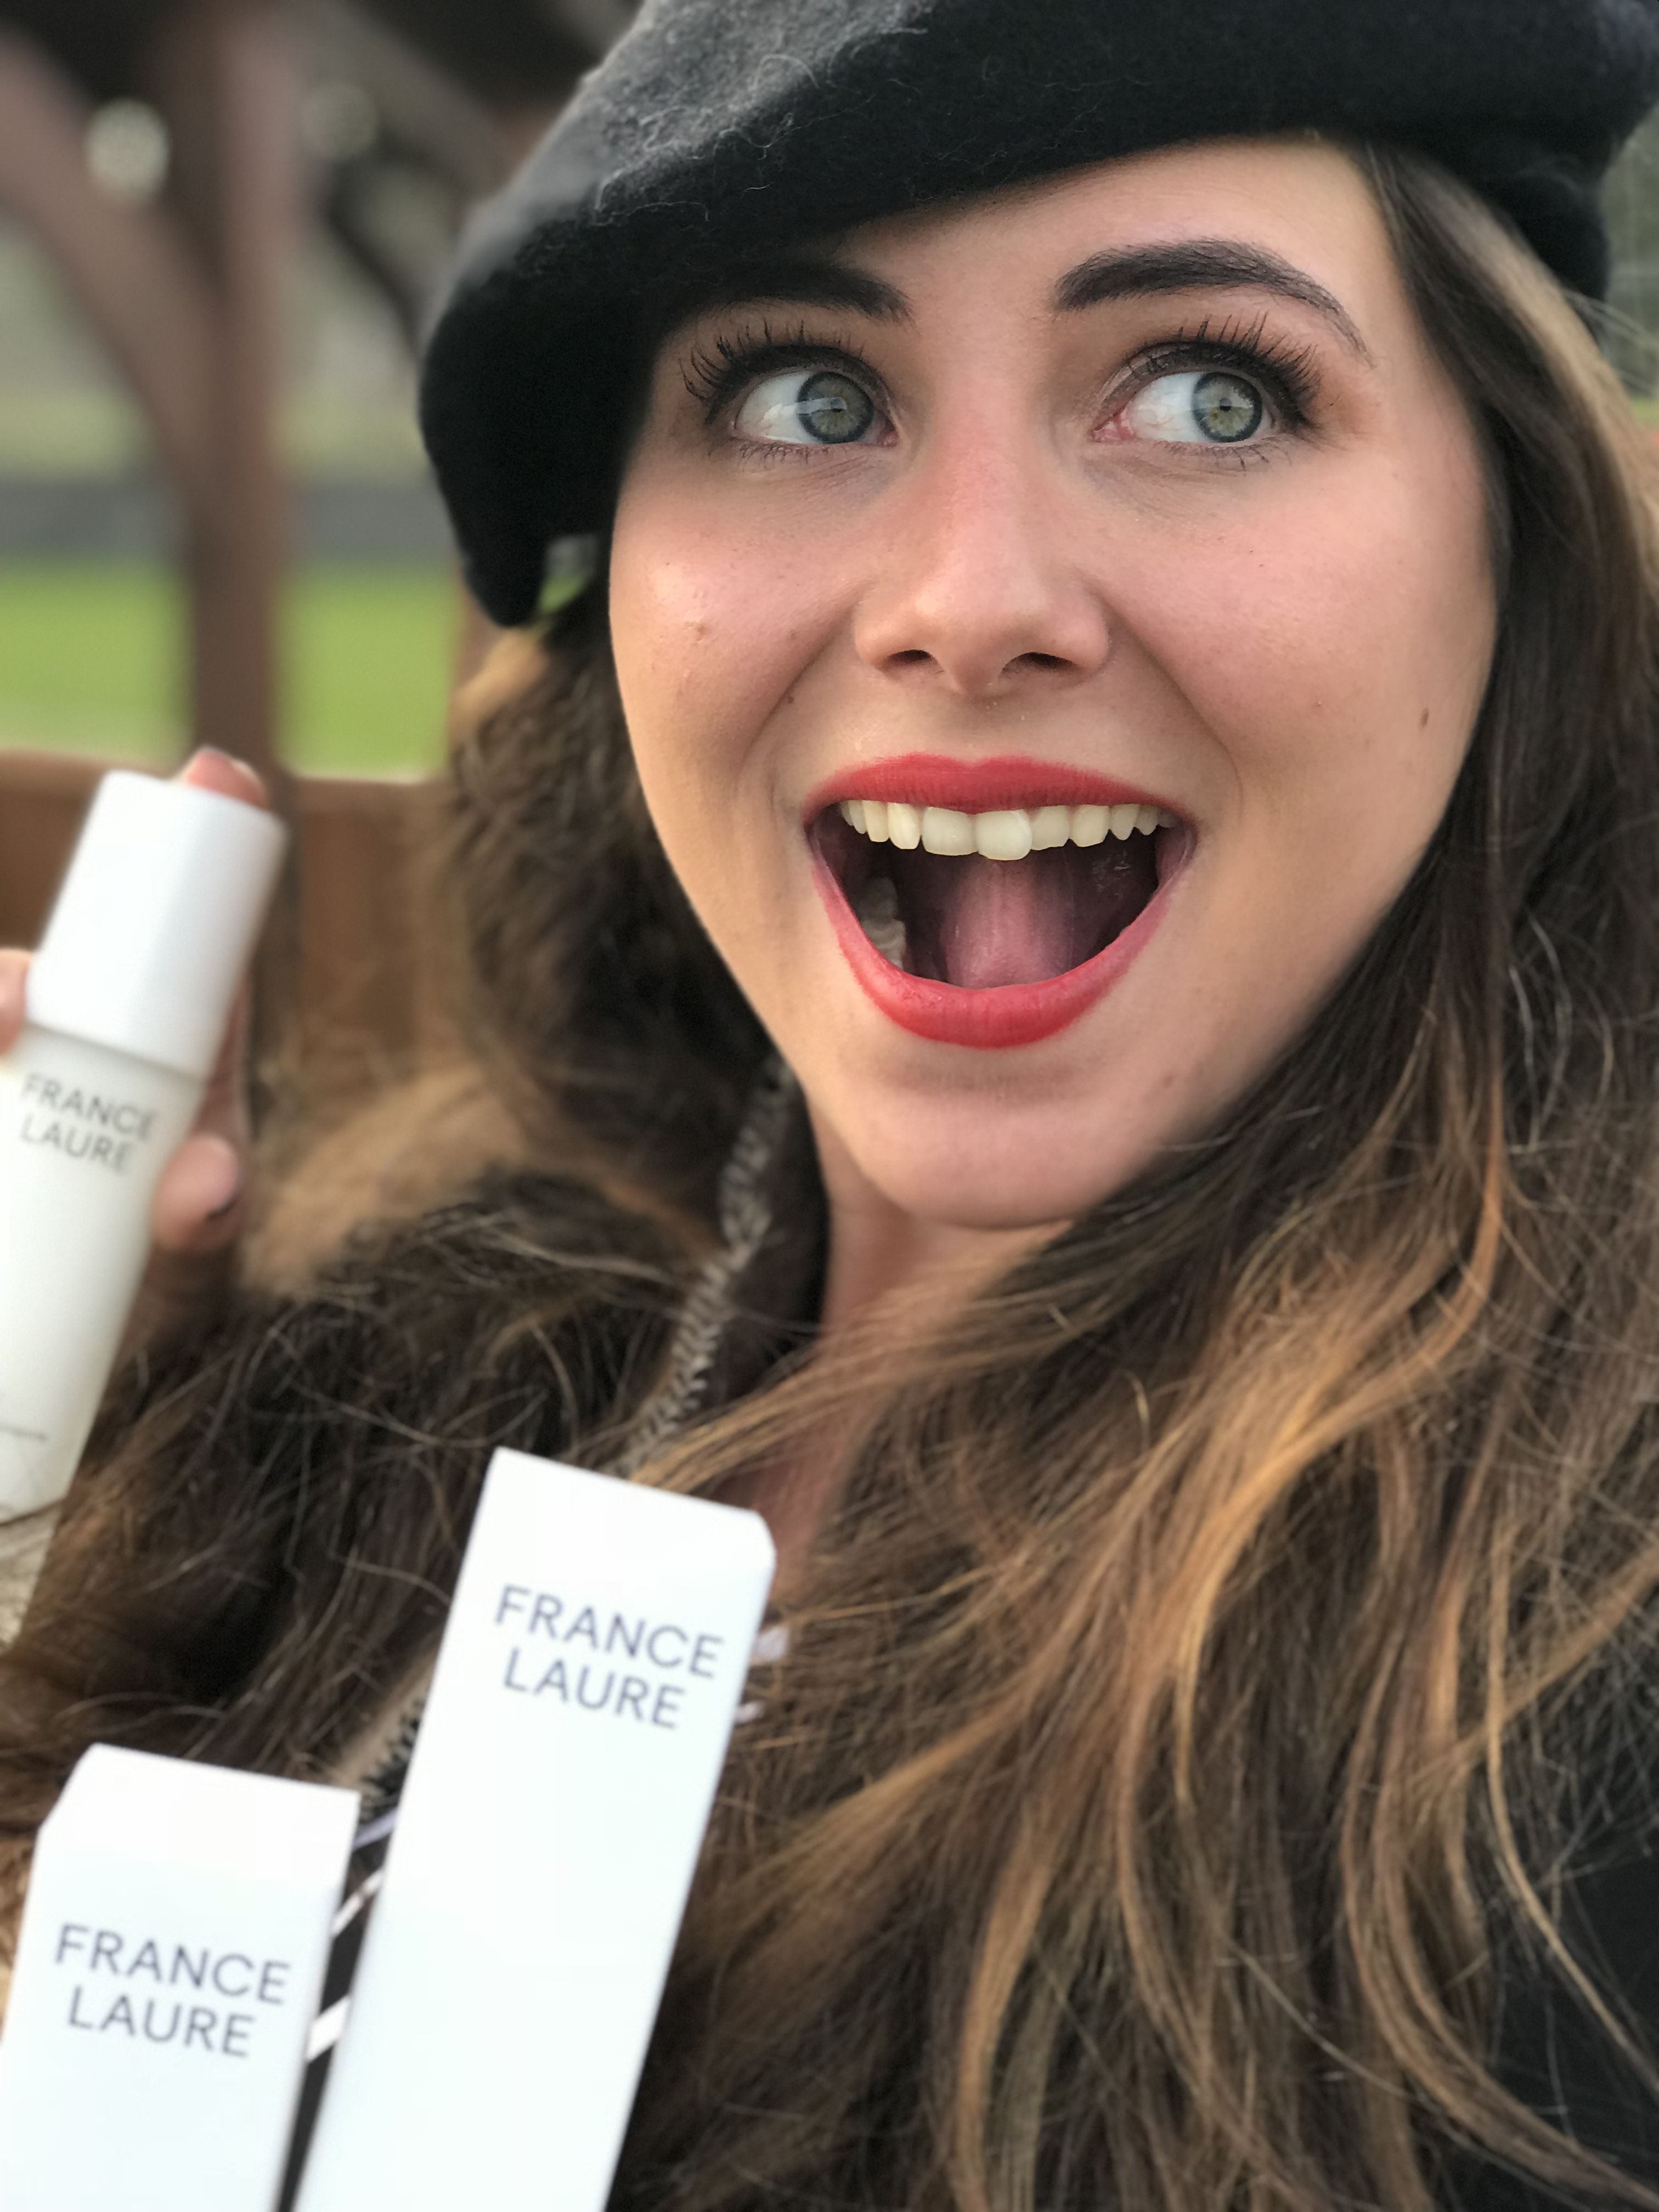 Pin by California Skincare Supply on France Laure